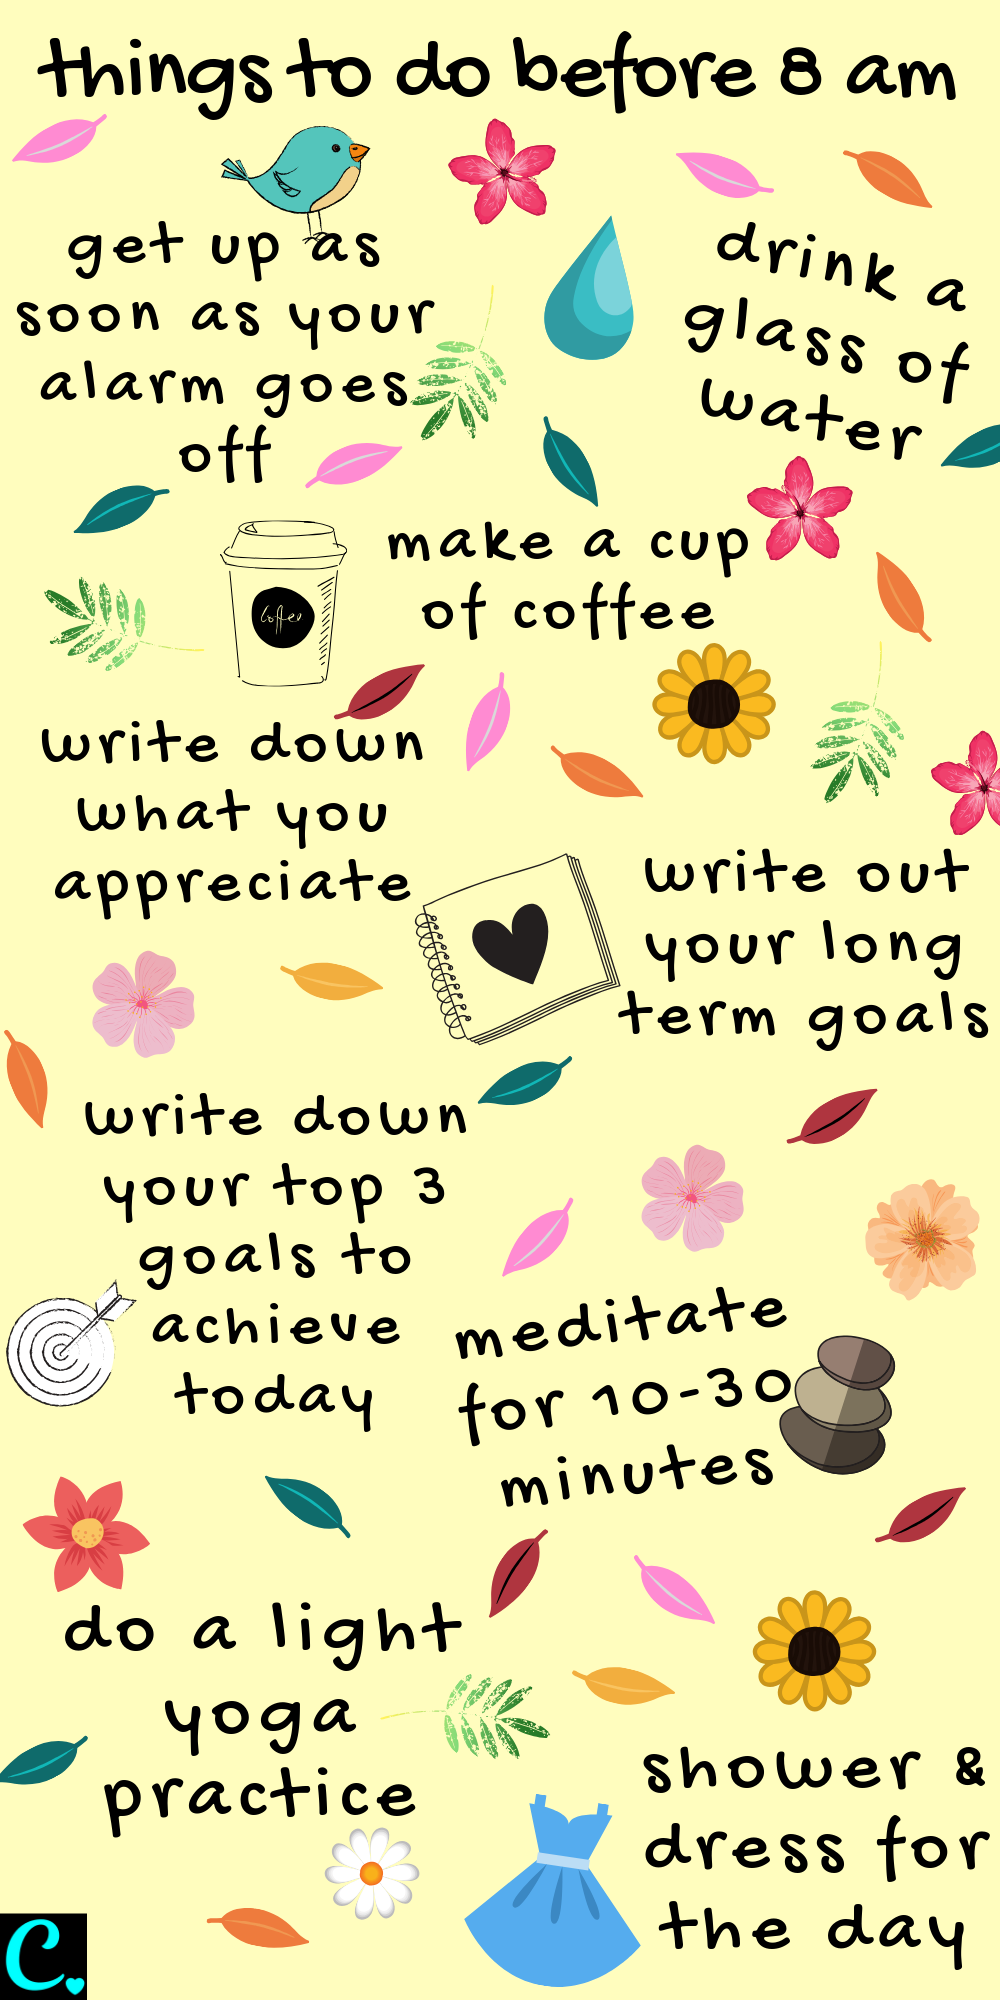 8 Things To Do Before 8am infographic for the best morning routine! #morningroutine #morningcoffee #habits #livewell #morninghabits